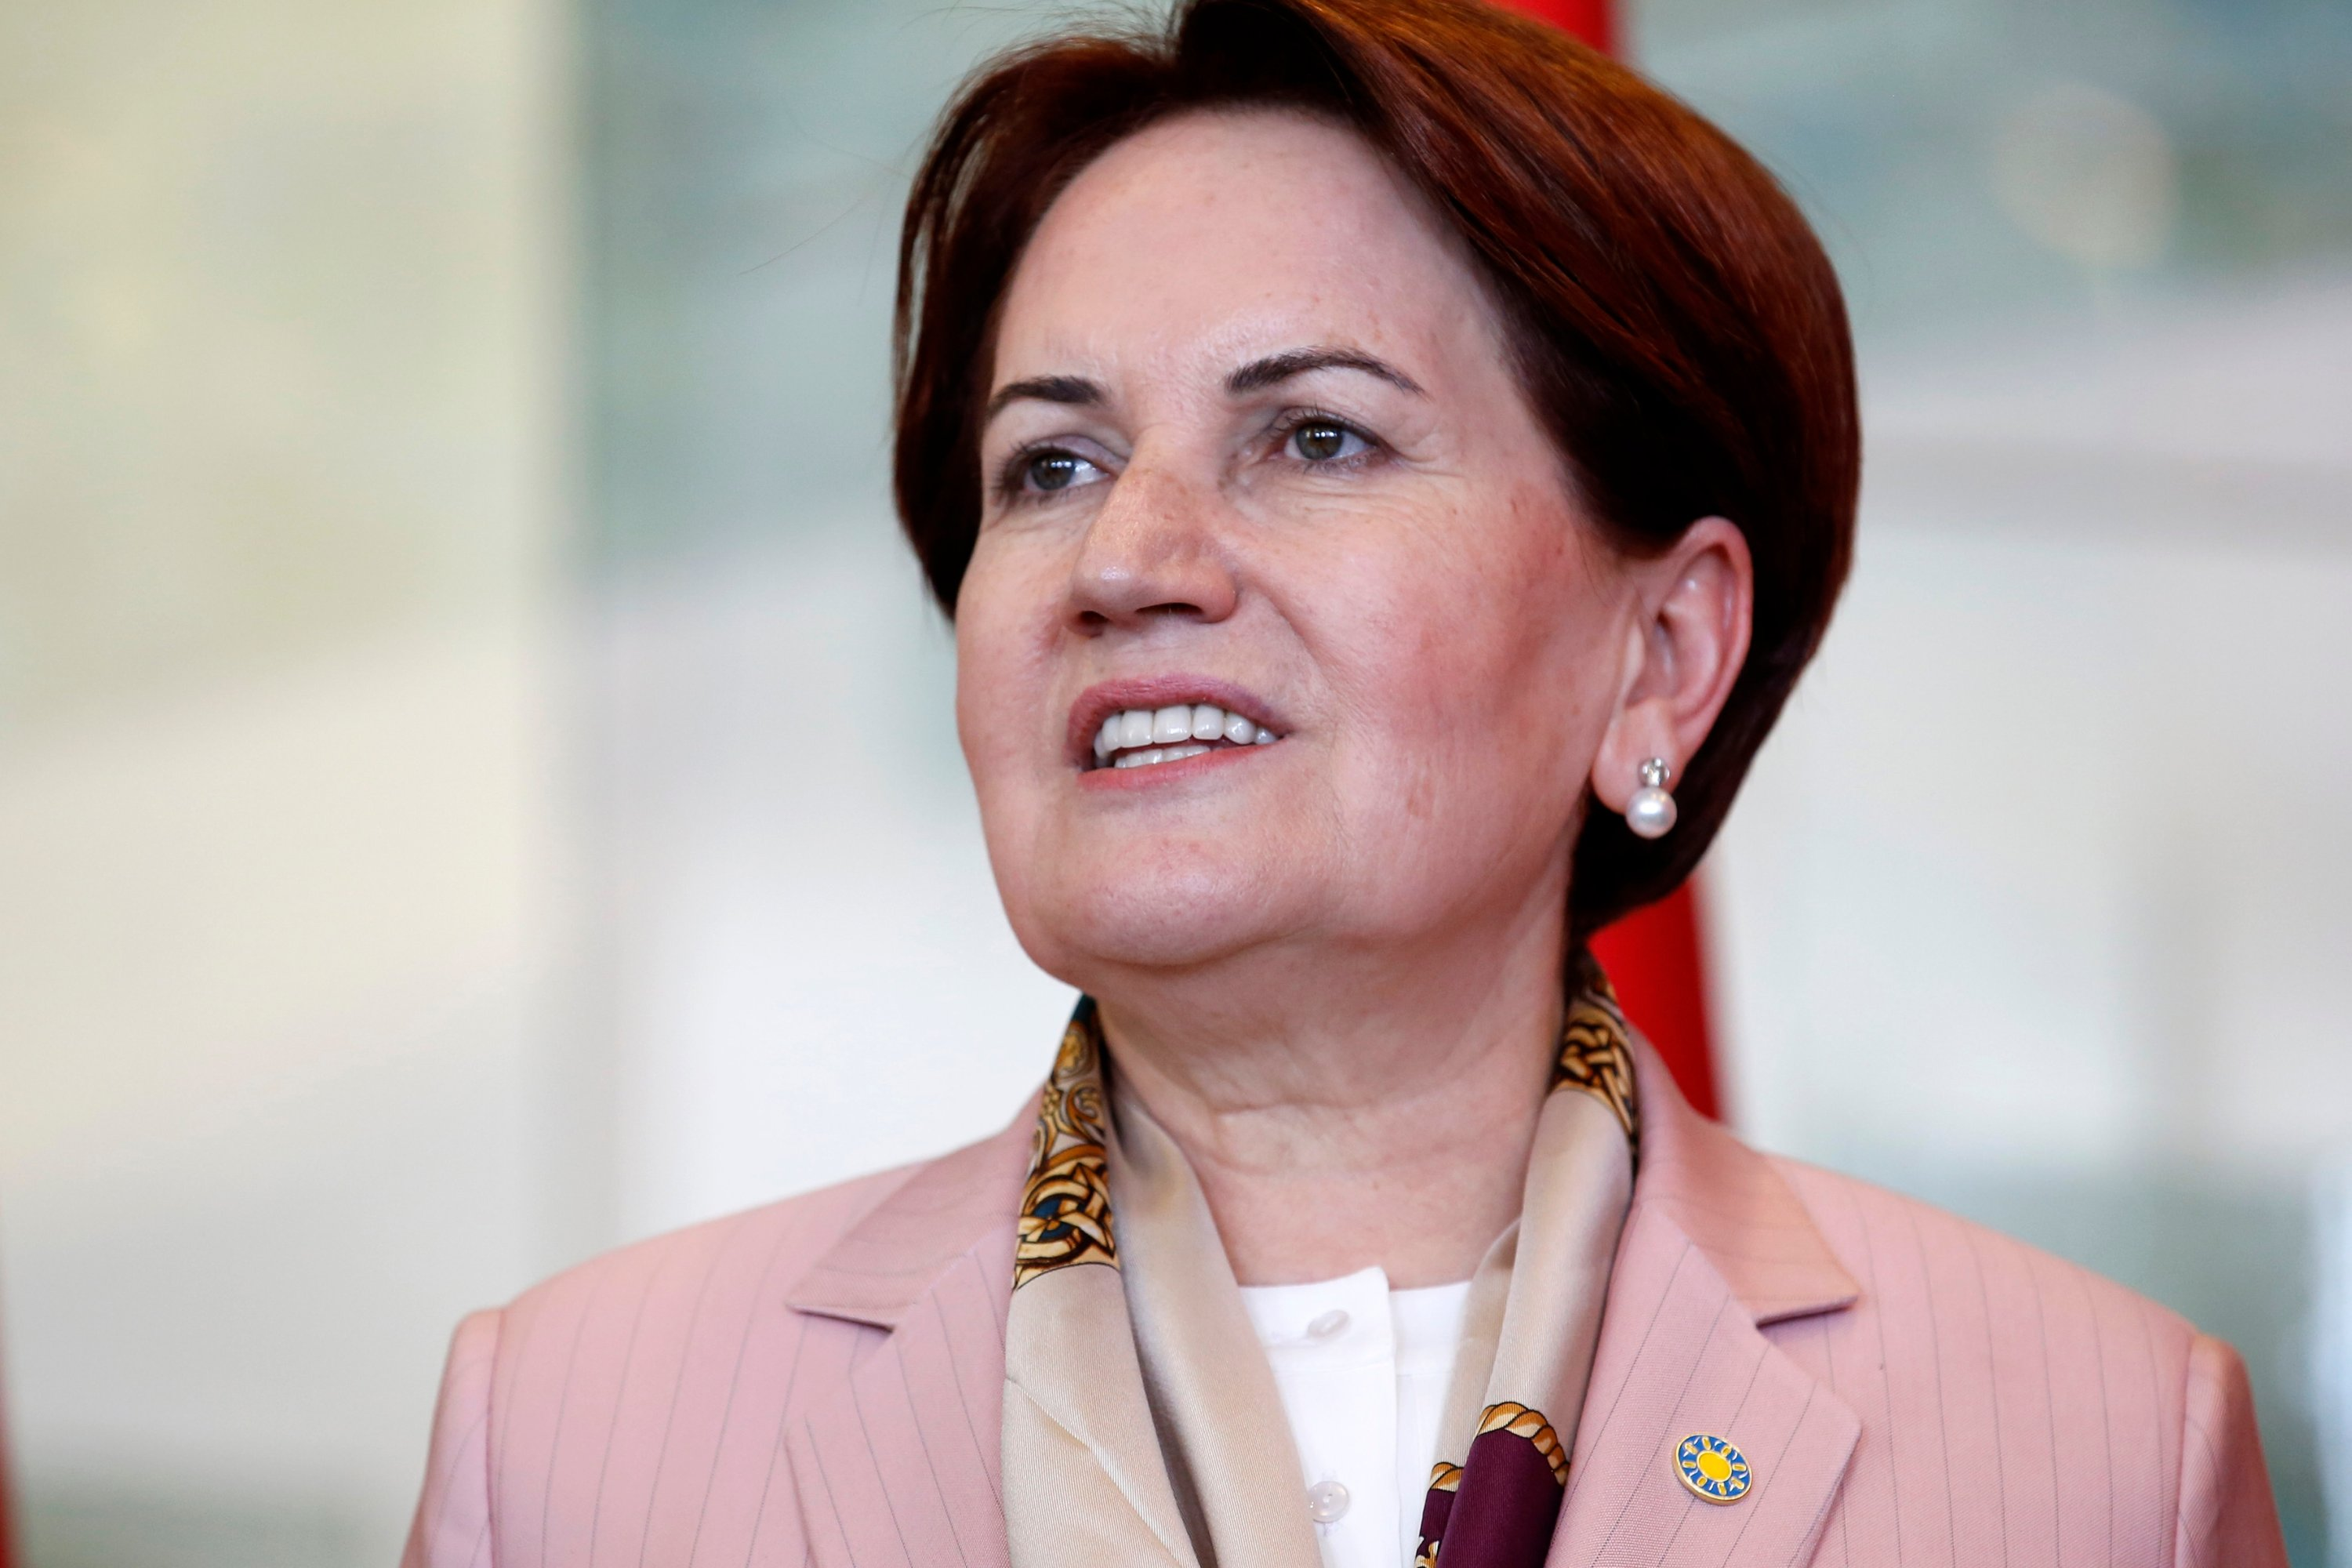 Republican People's Party (CHP) Chair Kemal Kılıçdaroğlu and Good Party (IP) Chair Meral Akşener (pictured) discussed possible alliance formulas before the presidential election in Ankara, Turkey, April 25, 2018. (Shutterstock Photo)